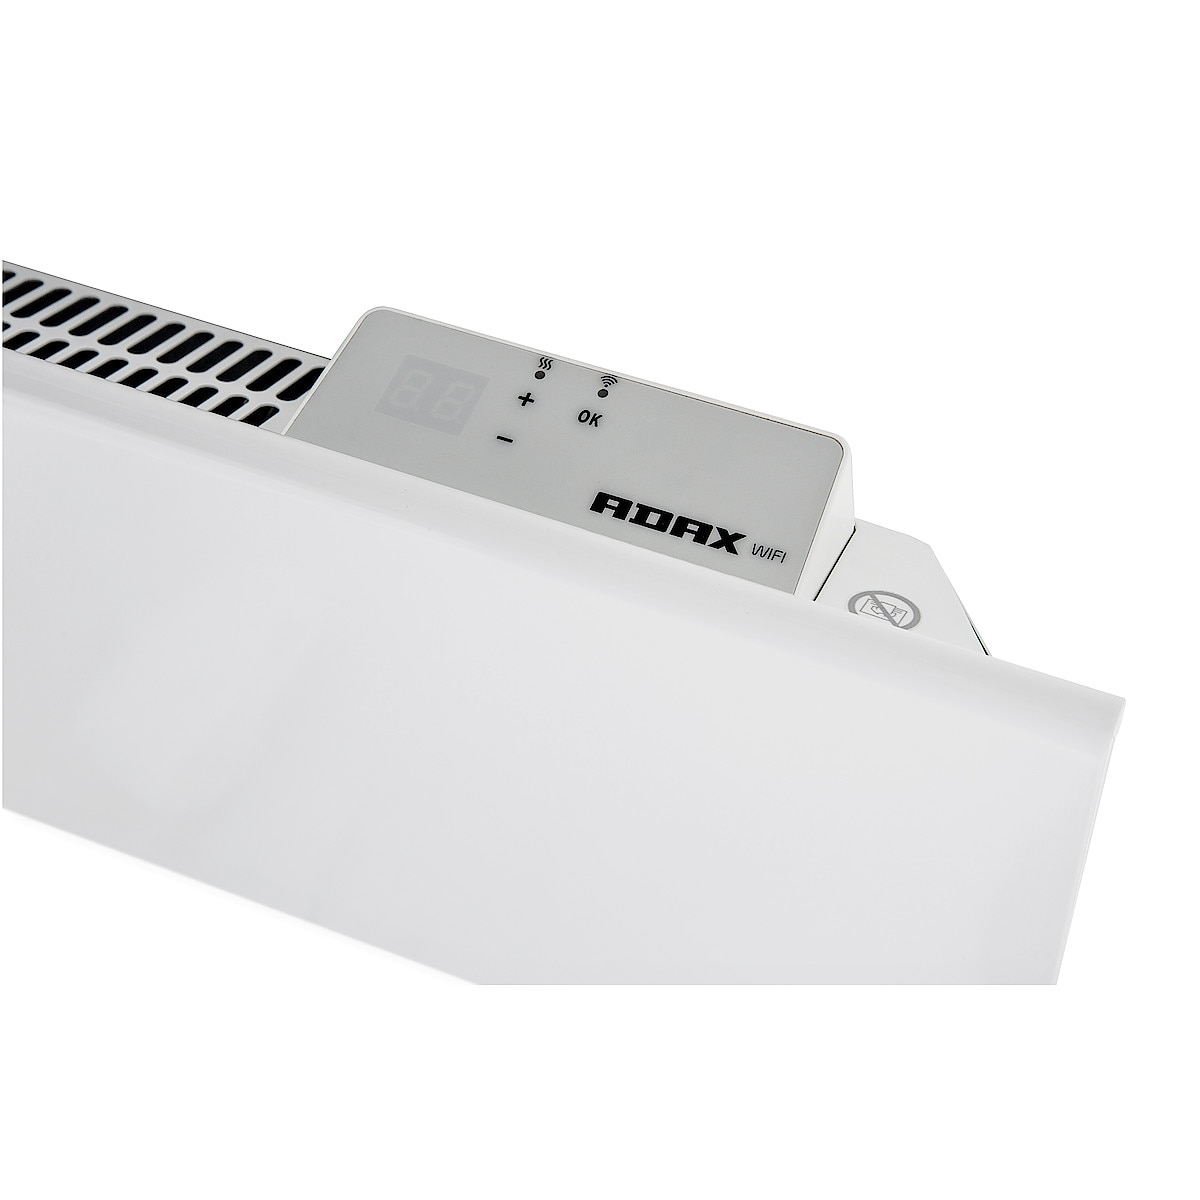 Element med WiFi 1200 W 400 V Adax Neo H12WT